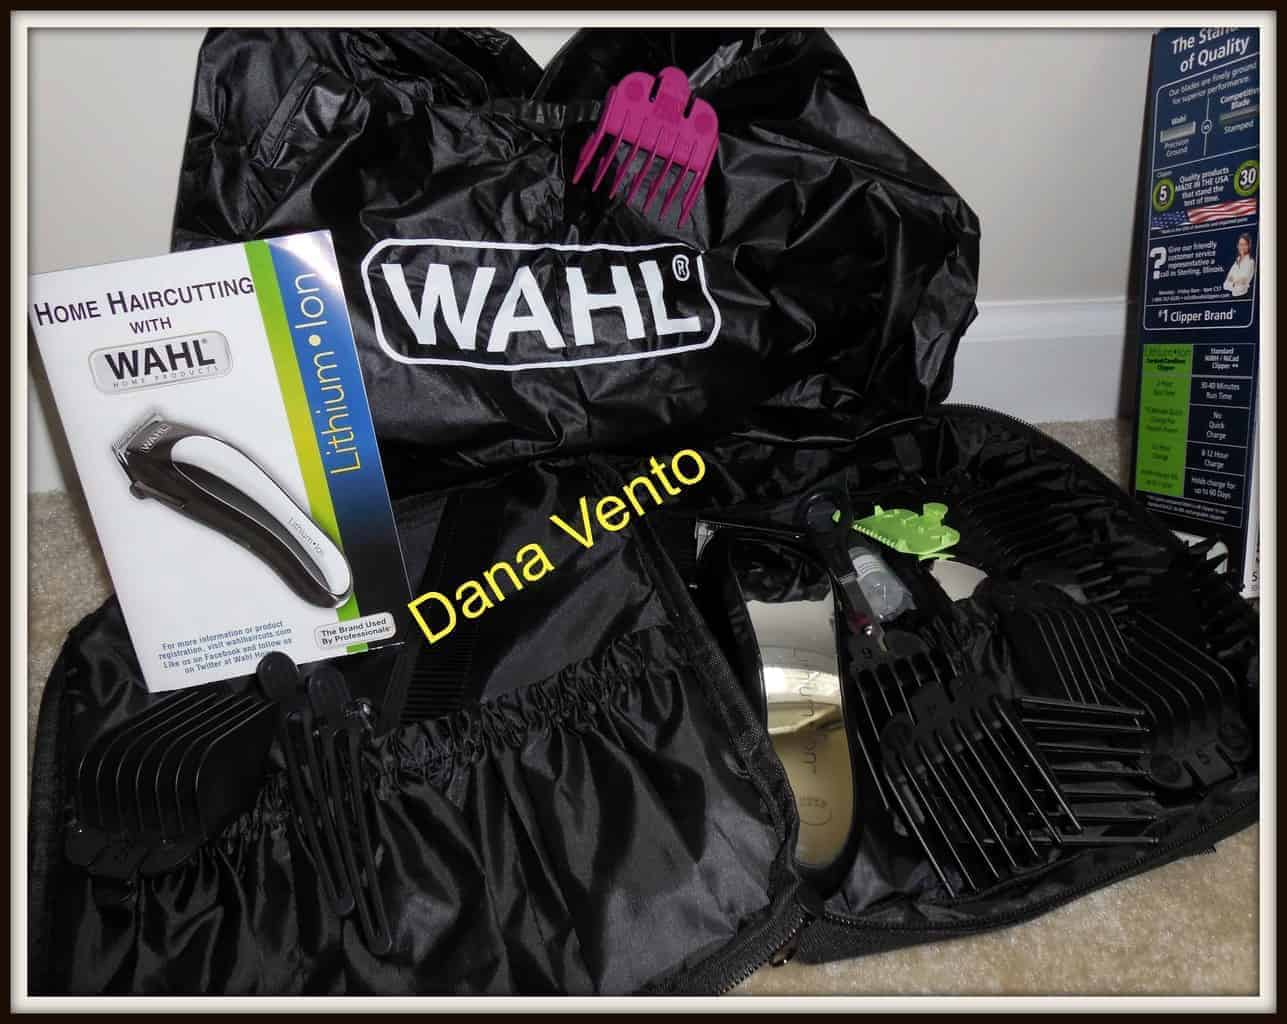 WAHL – Clipping Away